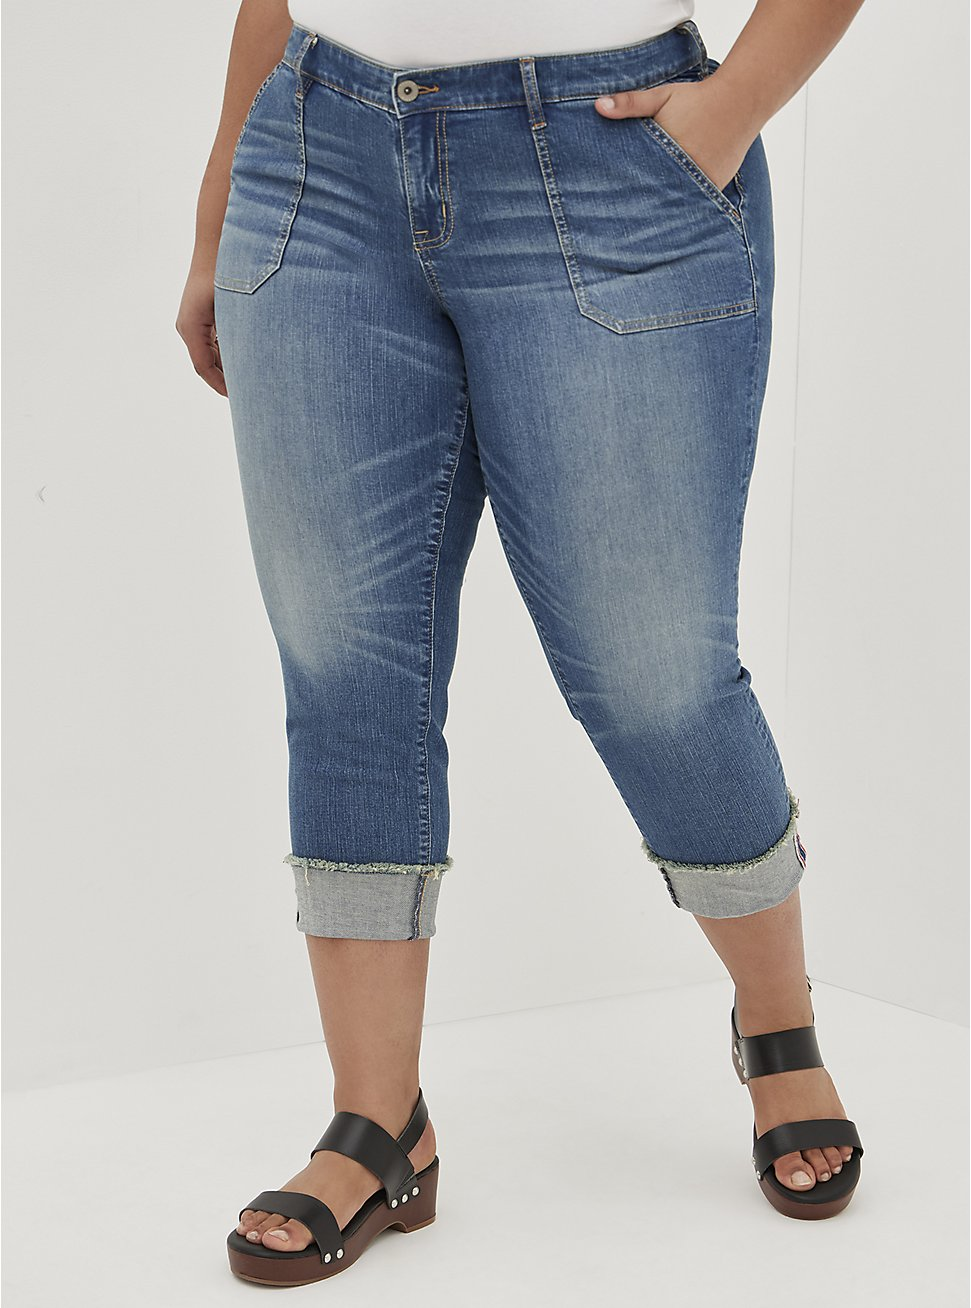 Crop Boyfriend Jean - Vintage Stretch Medium Wash, BACKSEAT BINGO, hi-res